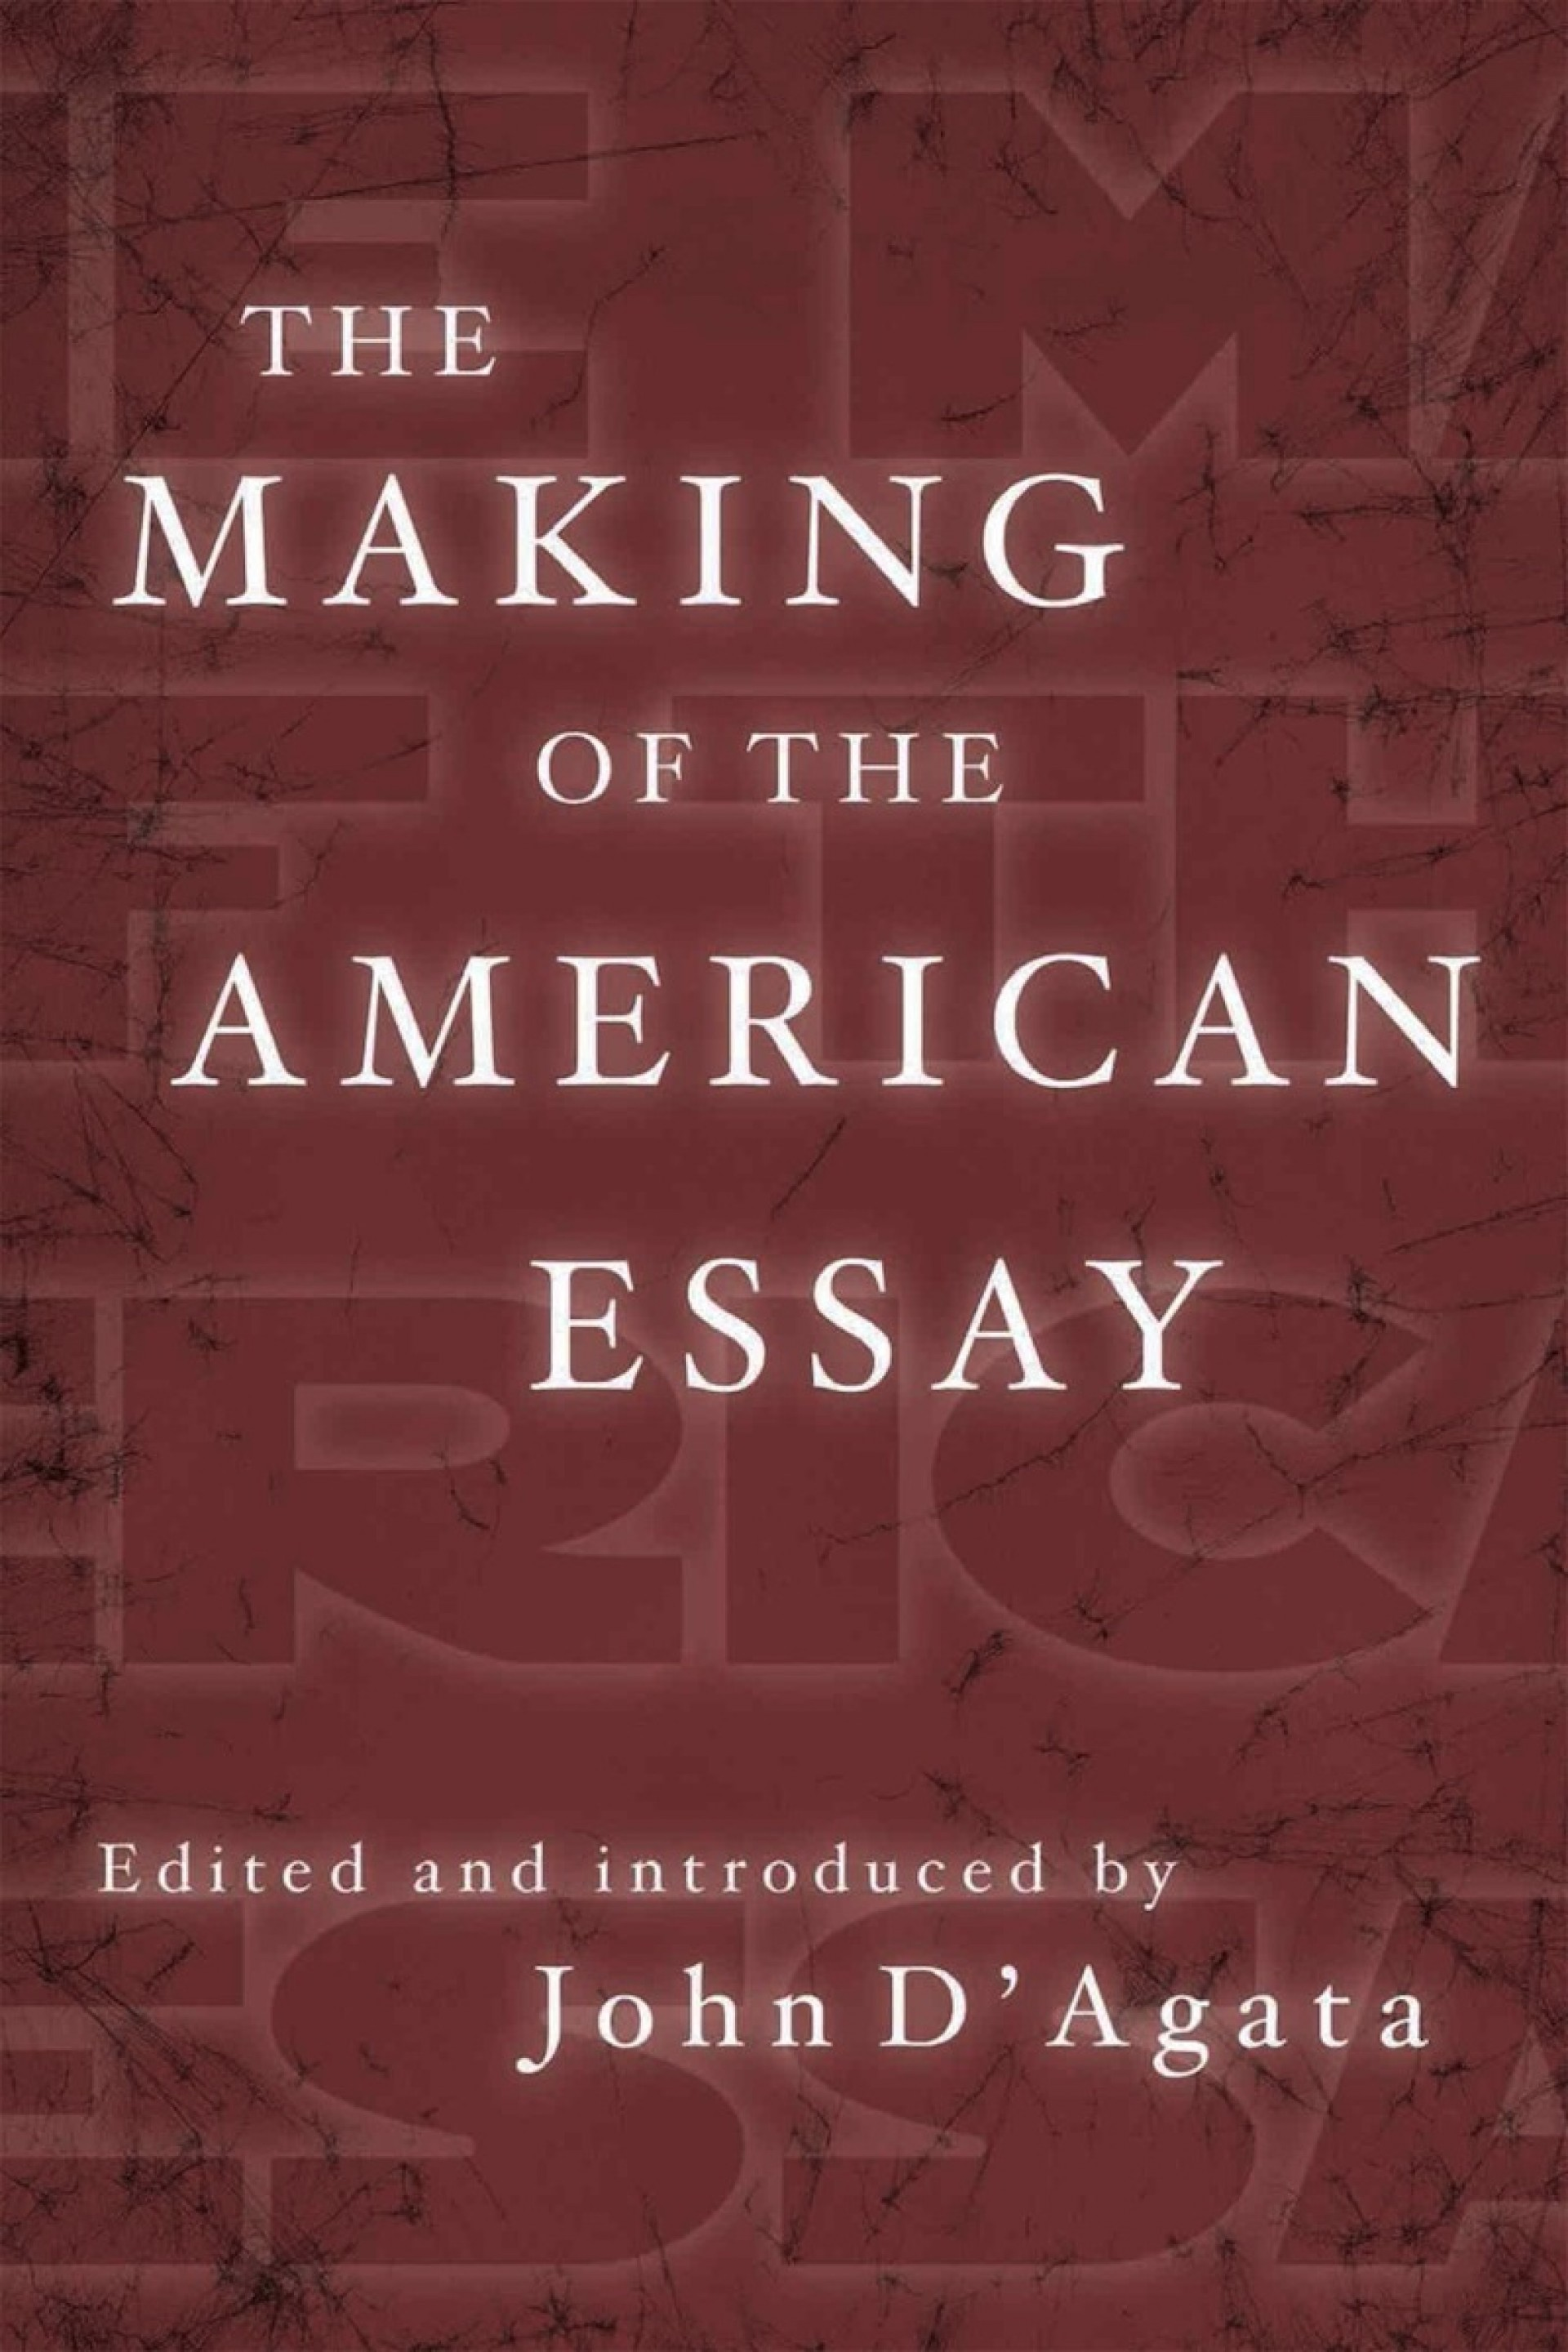 003 Essay Example Makingamericanessay John Stirring D Agata D'agata Next American The Pdf 1920